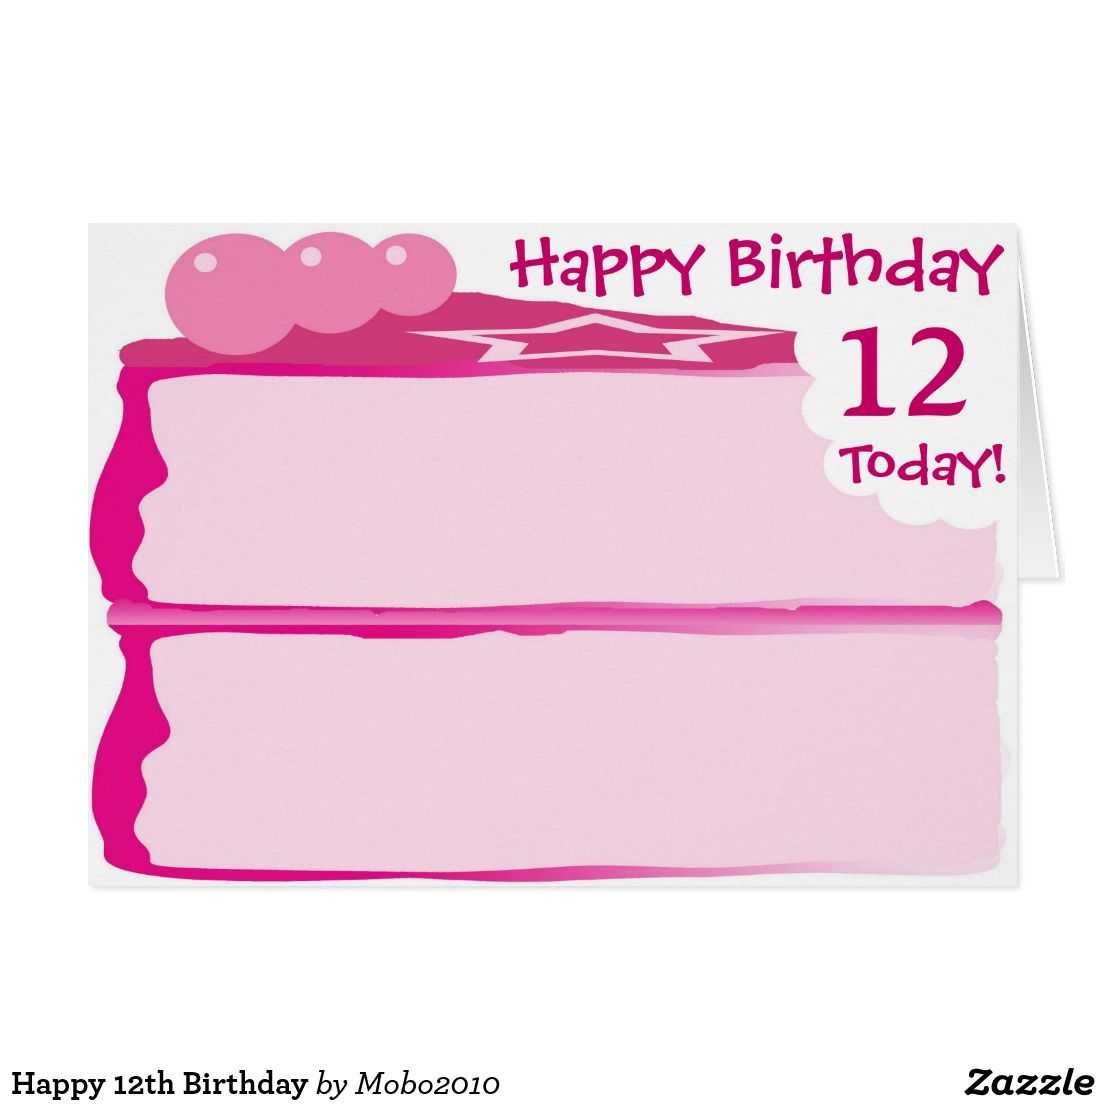 Happy 12th Birthday Birthday Cards Ages 1 100 Iced Pink Cake